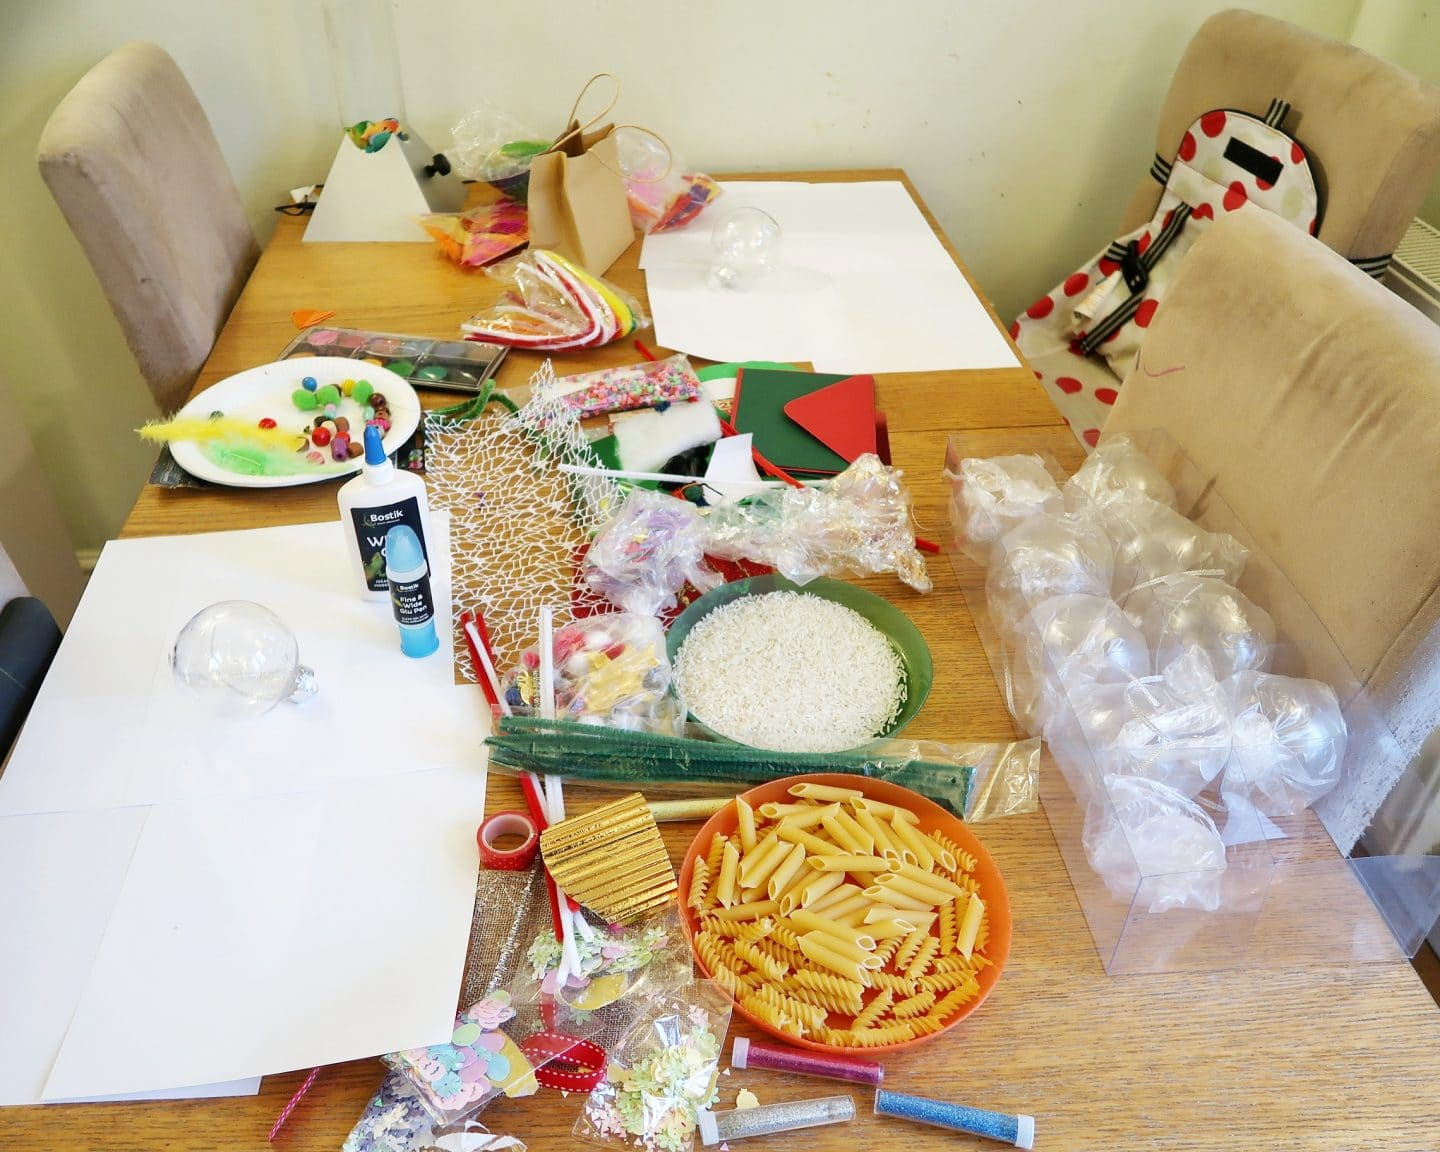 Lots of crafting materials like coloured card, glitter and sequins, all laid out on a table for Christmas Sensory bauble craft.